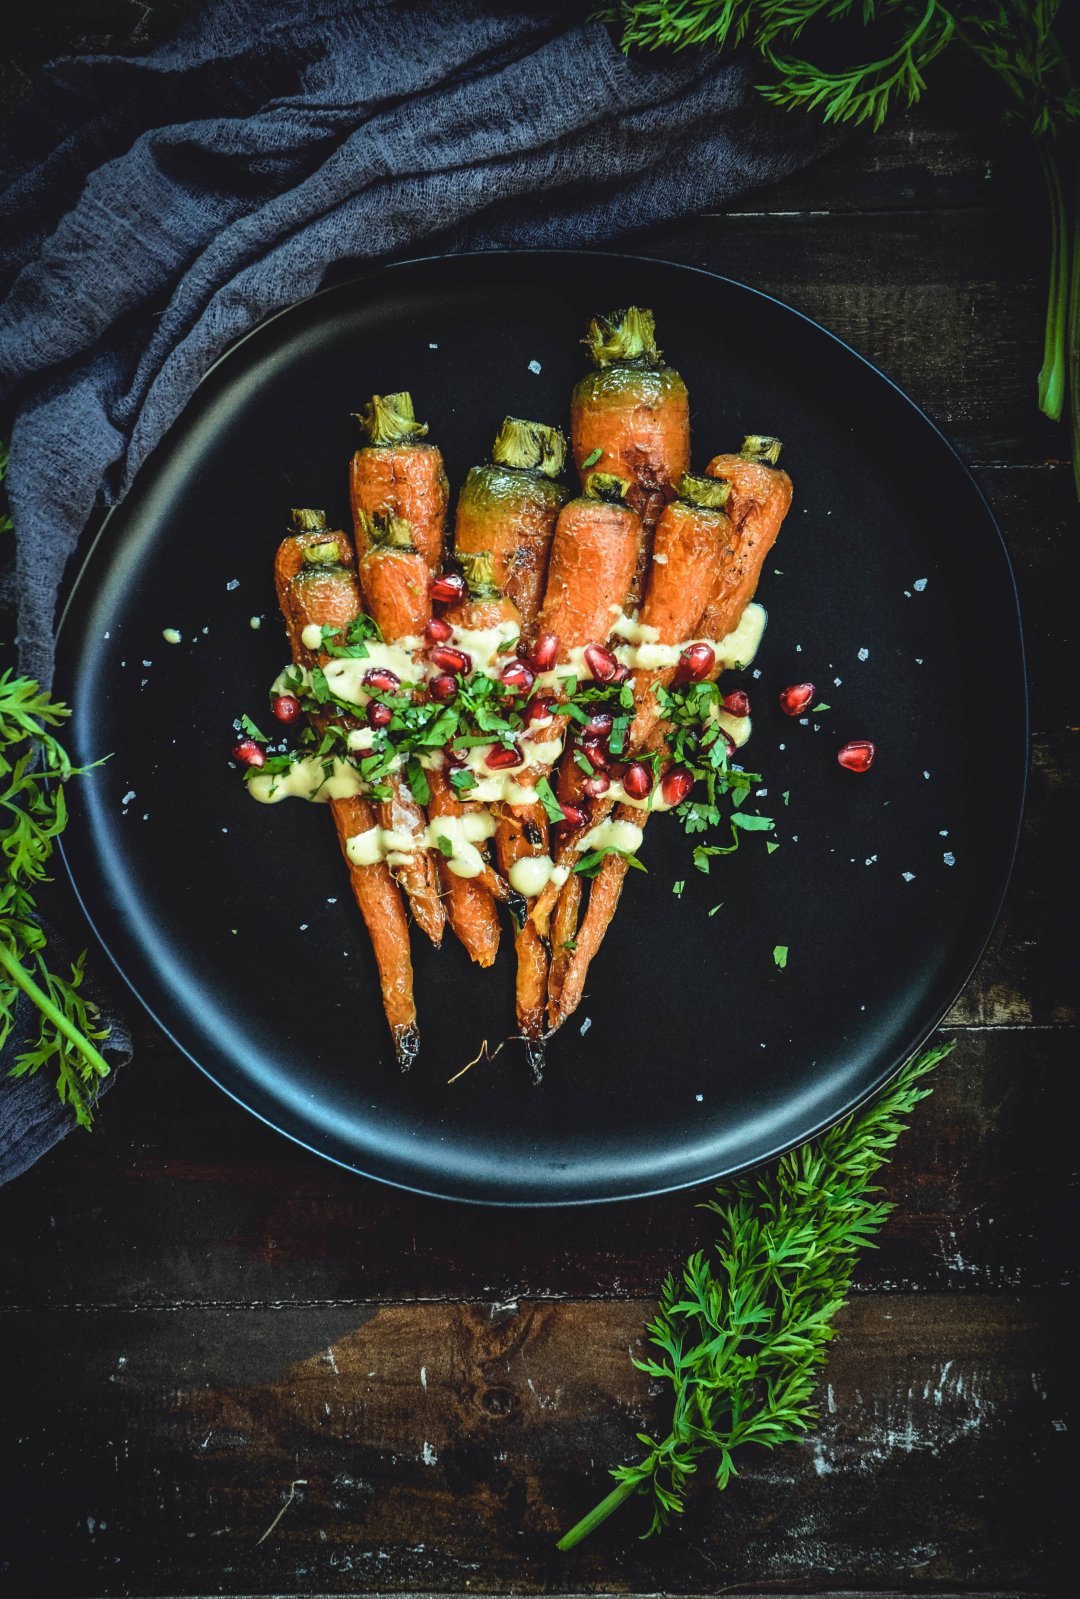 Roasted Carrots With A Simple Orange Tahini Sauce And Pomegranate on black plate with napkin and carrot greens